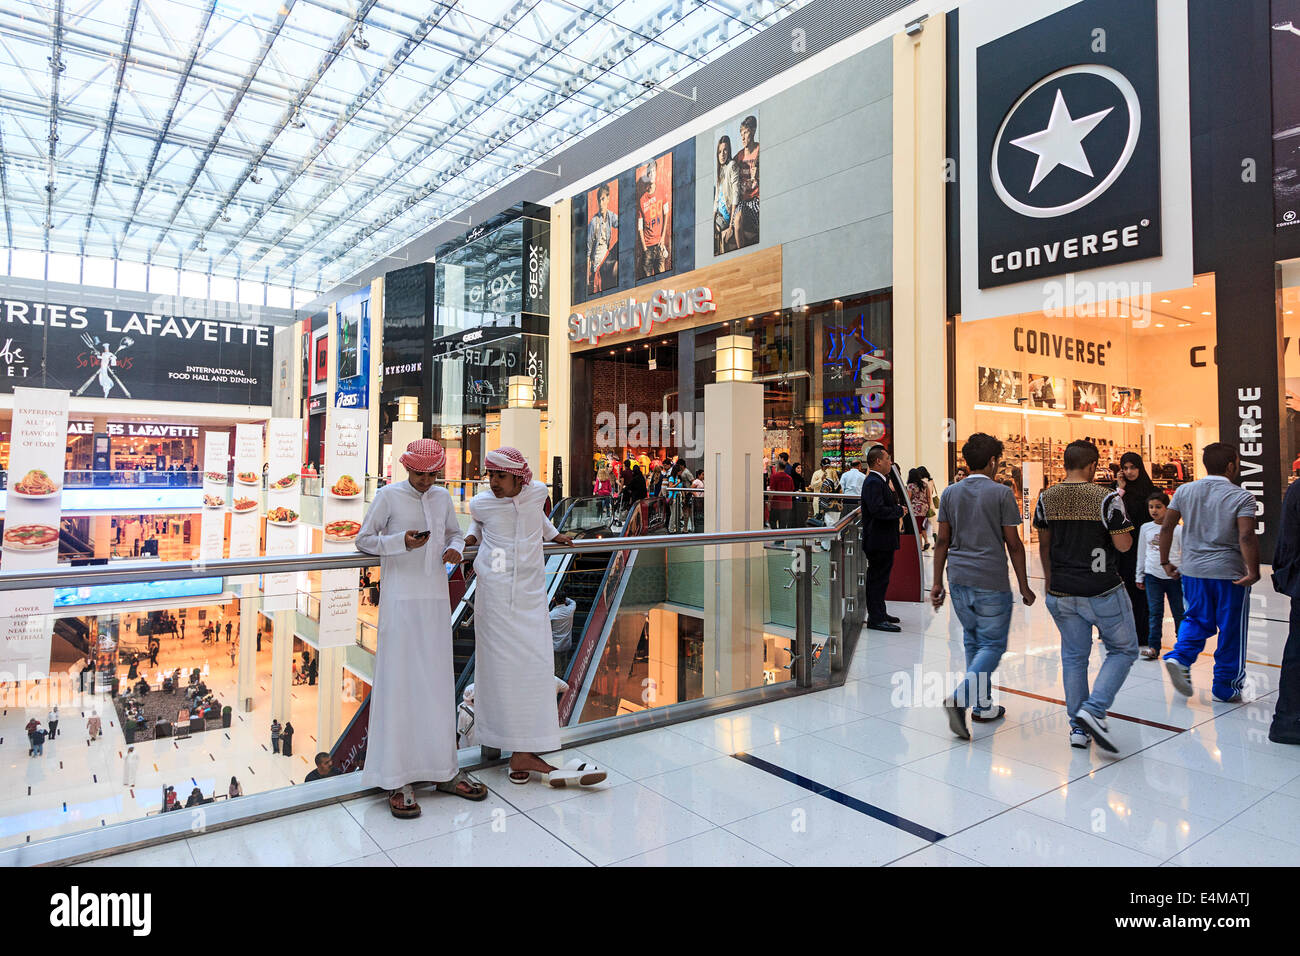 converse sale dubai mall